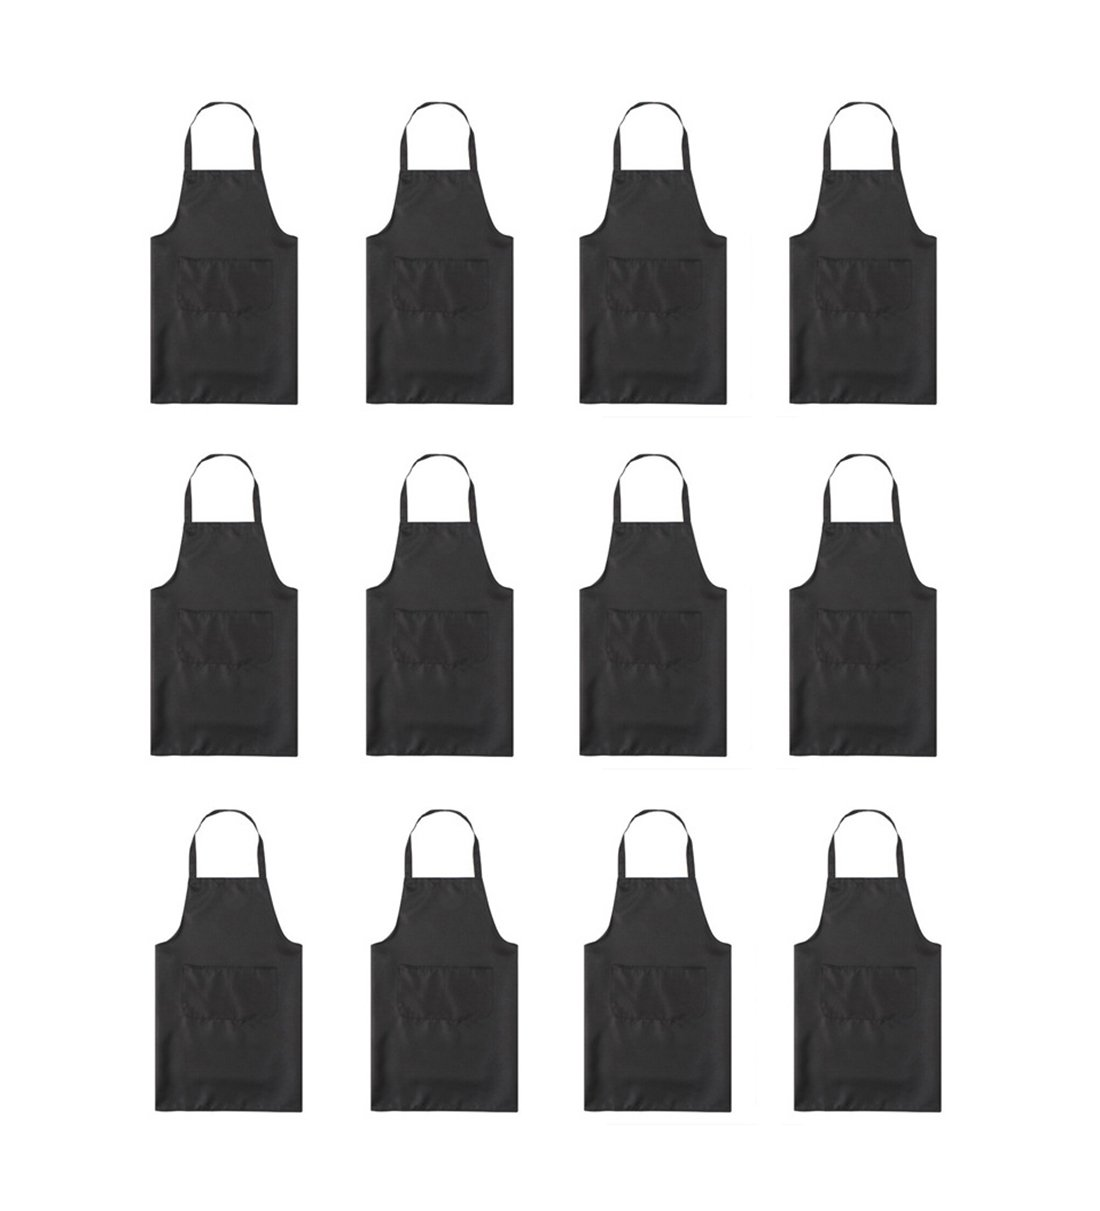 TSD STORY Total 12 PCS Plain Color Bib Apron Adult with 2 Front Pocket (Black) by TSD STORY (Image #1)